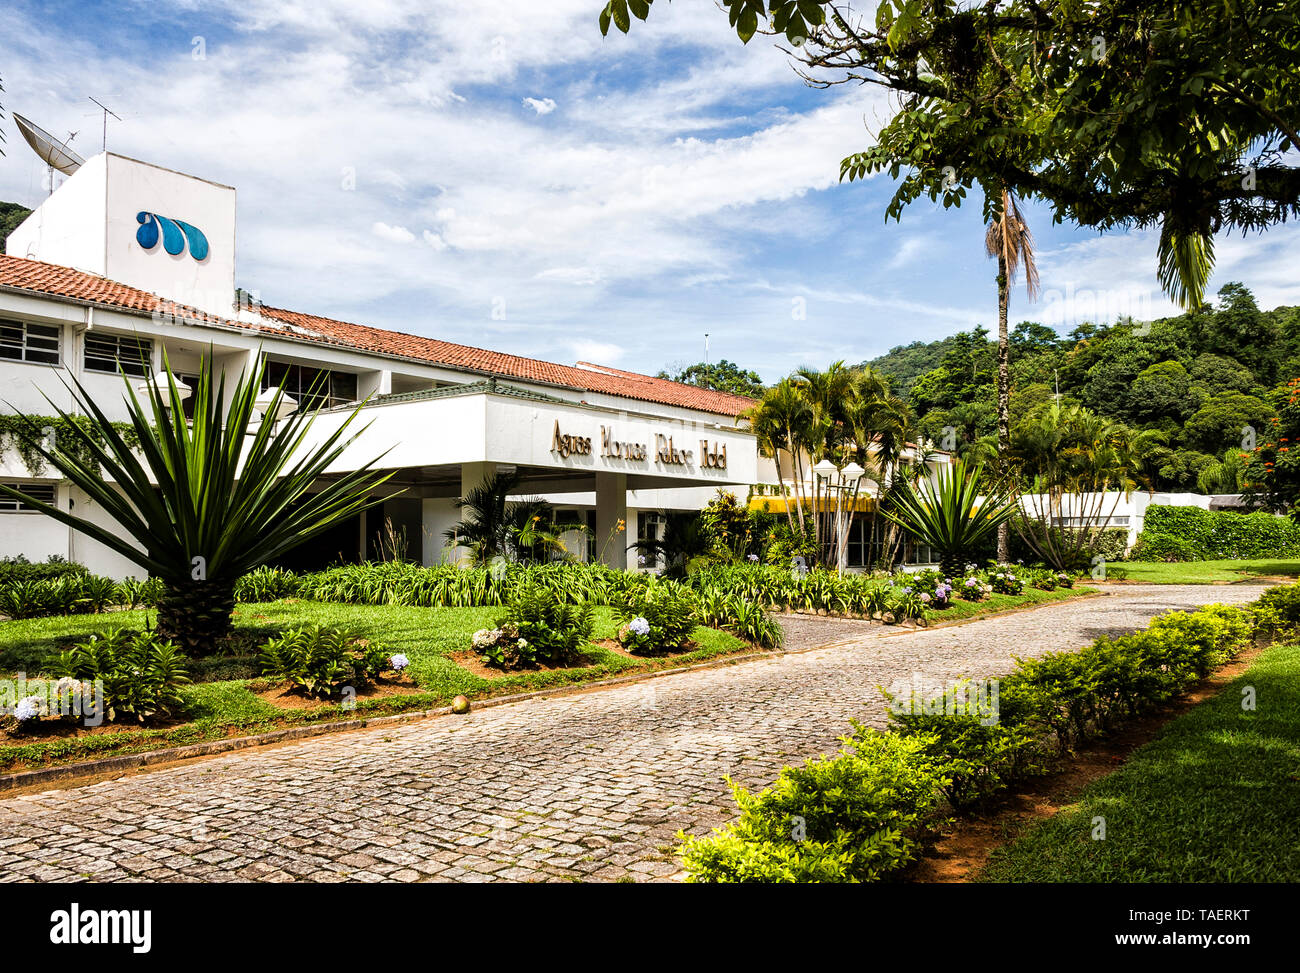 Entrance of Aguas Mornas Palace Hotel. Aguas Mornas, Santa Catarina, Brazil. Stock Photo